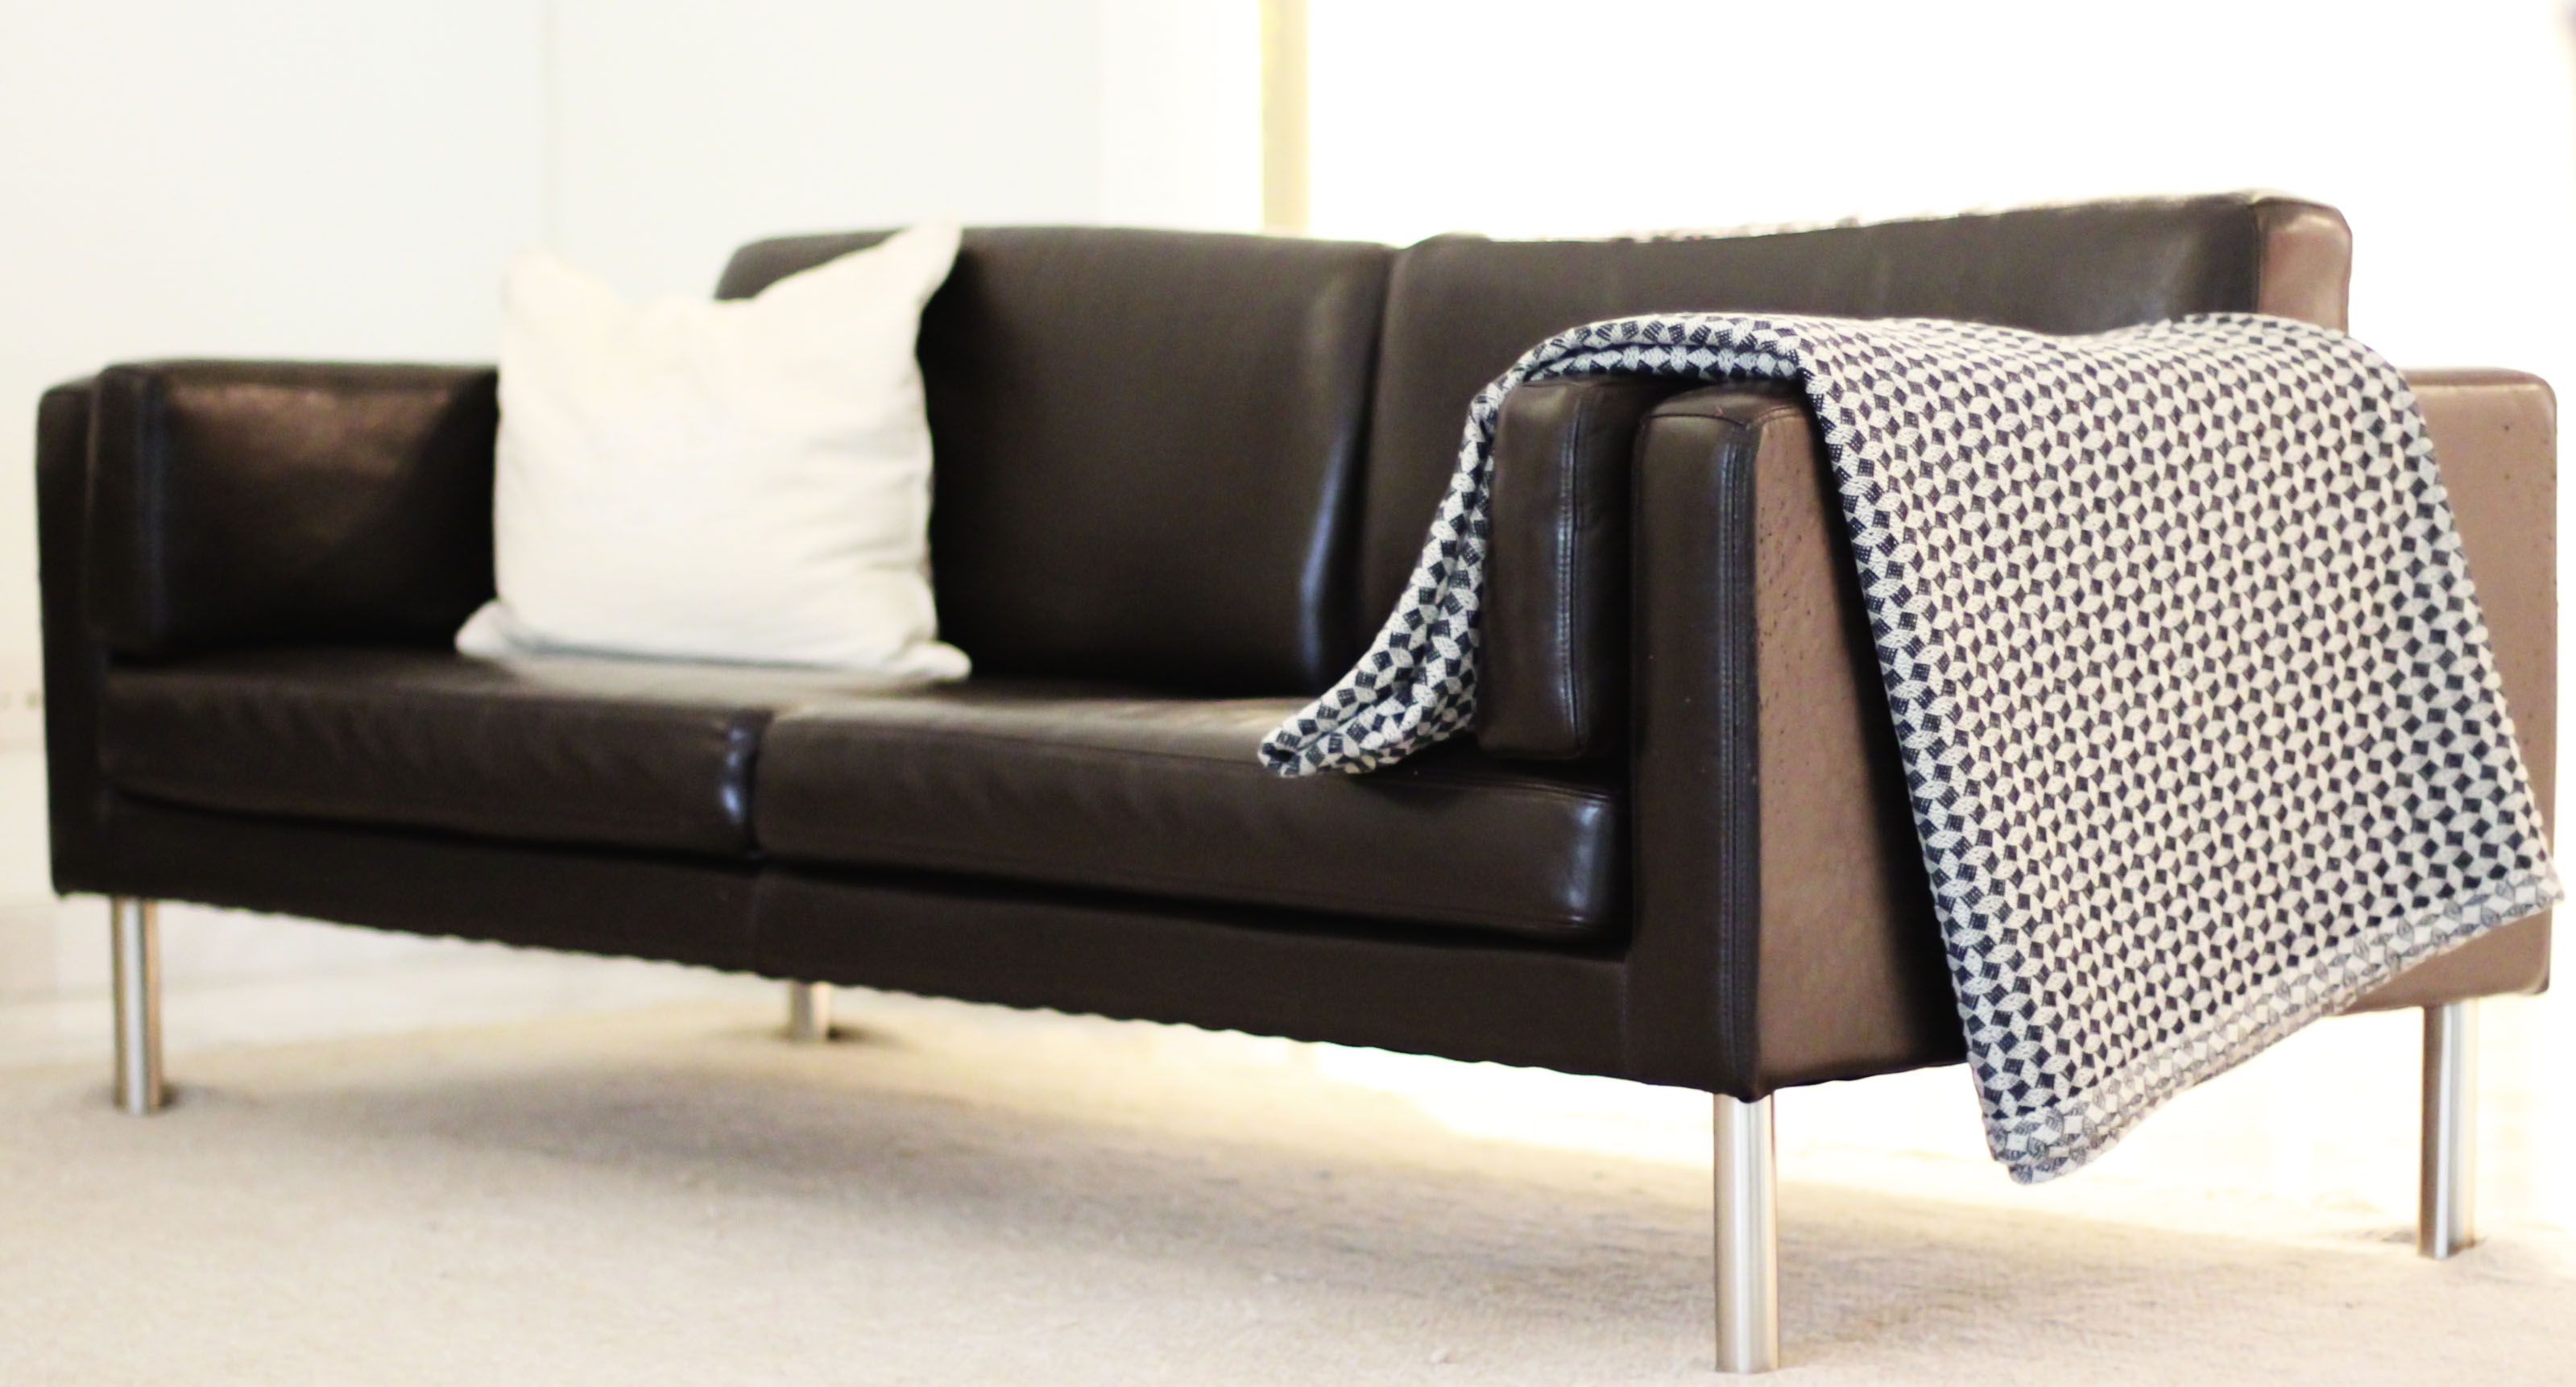 leather sofa ikea for upstate weekend house weekend. Black Bedroom Furniture Sets. Home Design Ideas